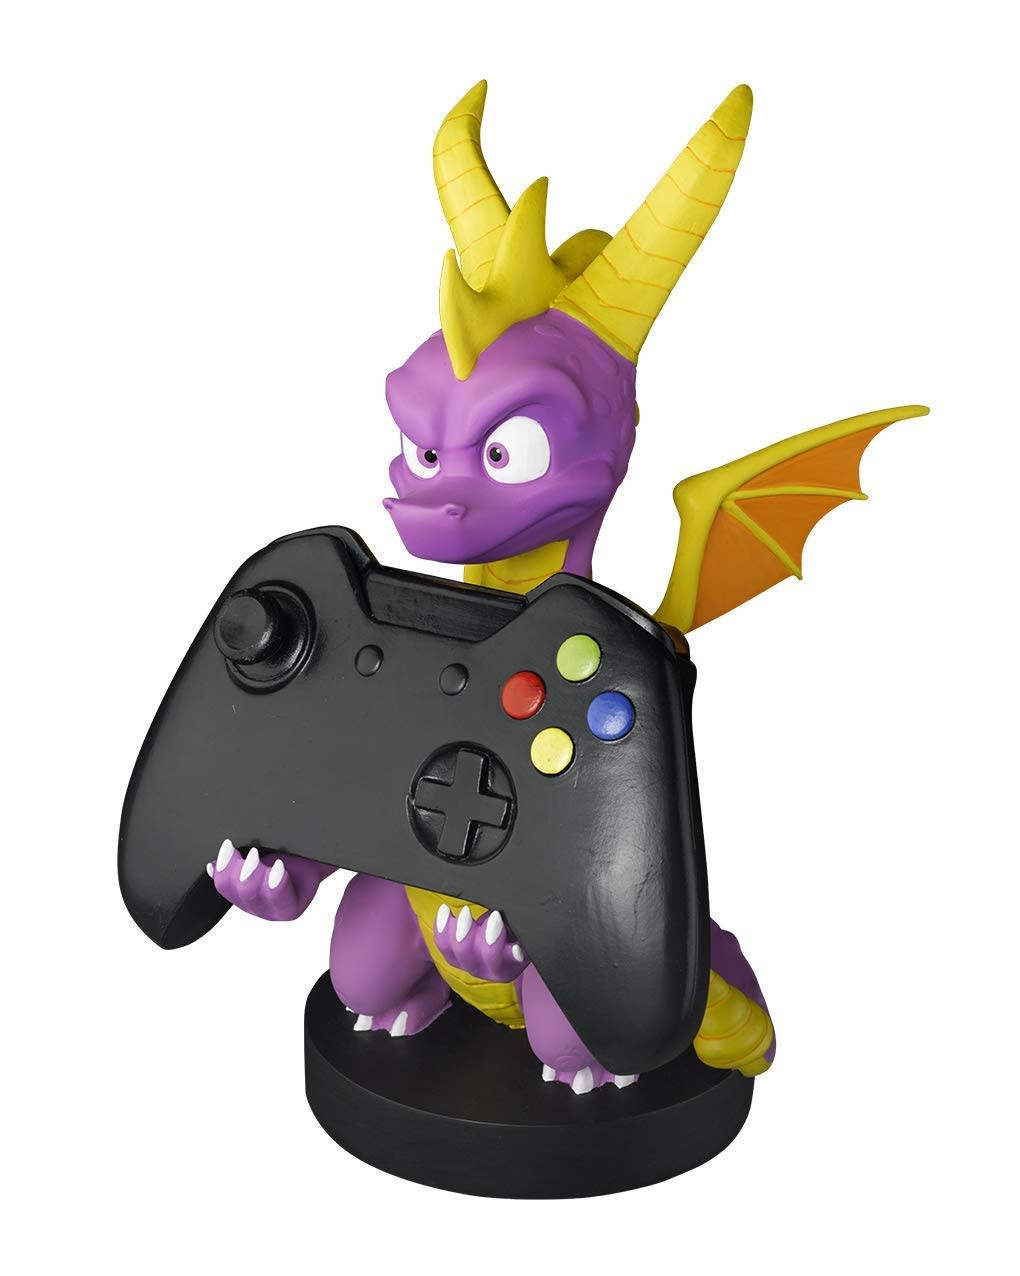 Exquisite Gaming Cable Guy - Spyro the Dragon Phone & Controller Holder